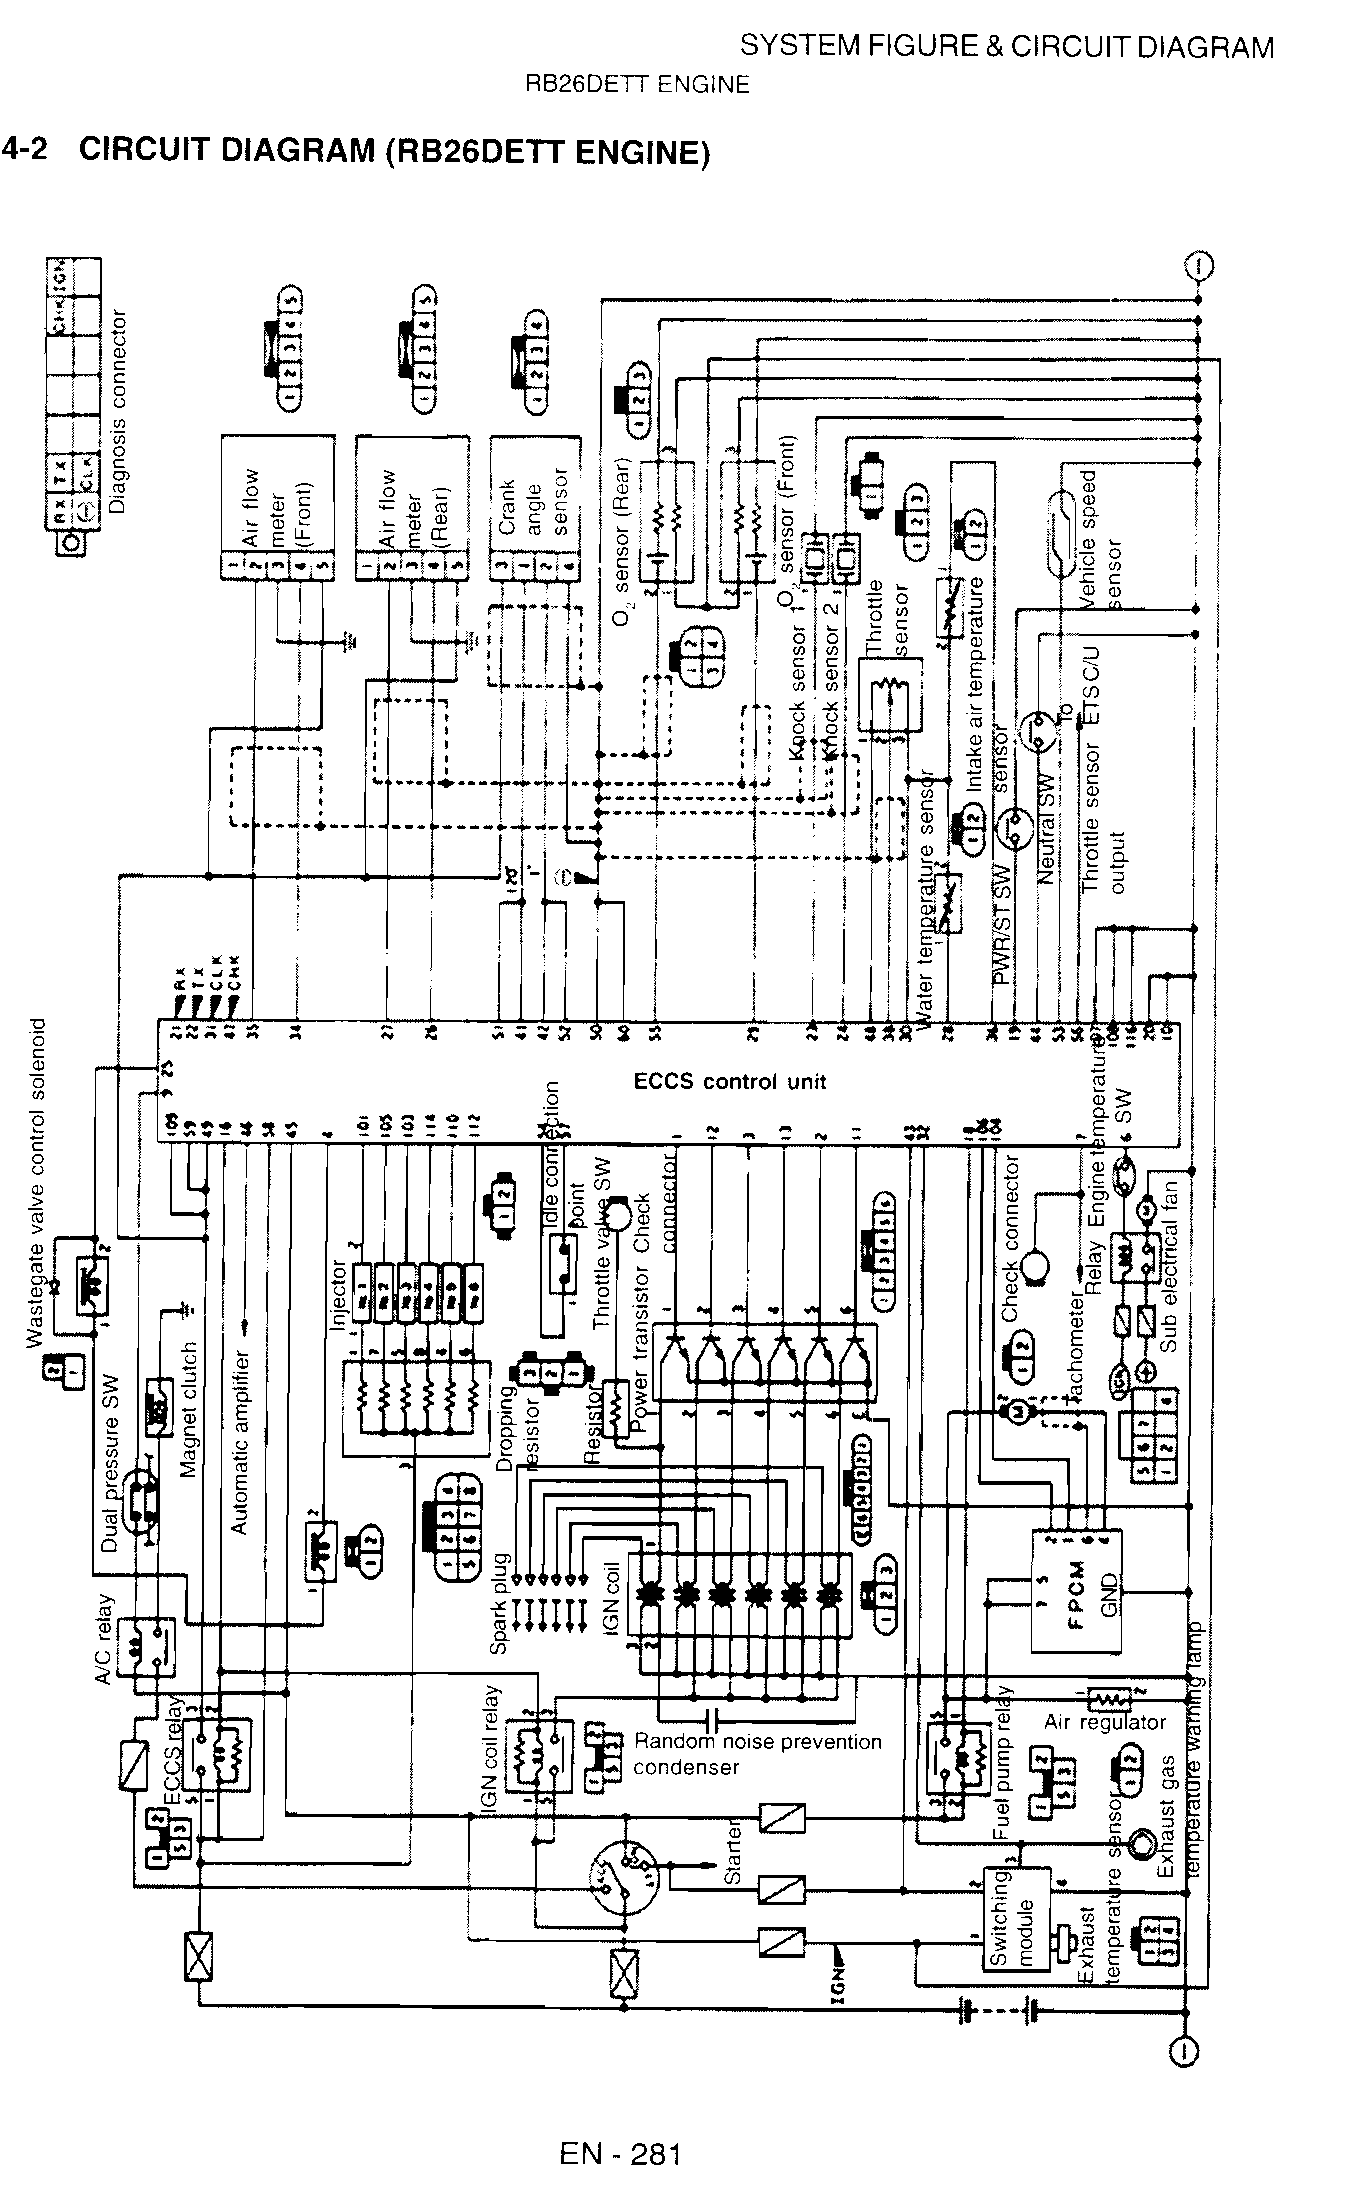 gtr wiring diagram - wiring diagram skyline r32 wiring diagram #1